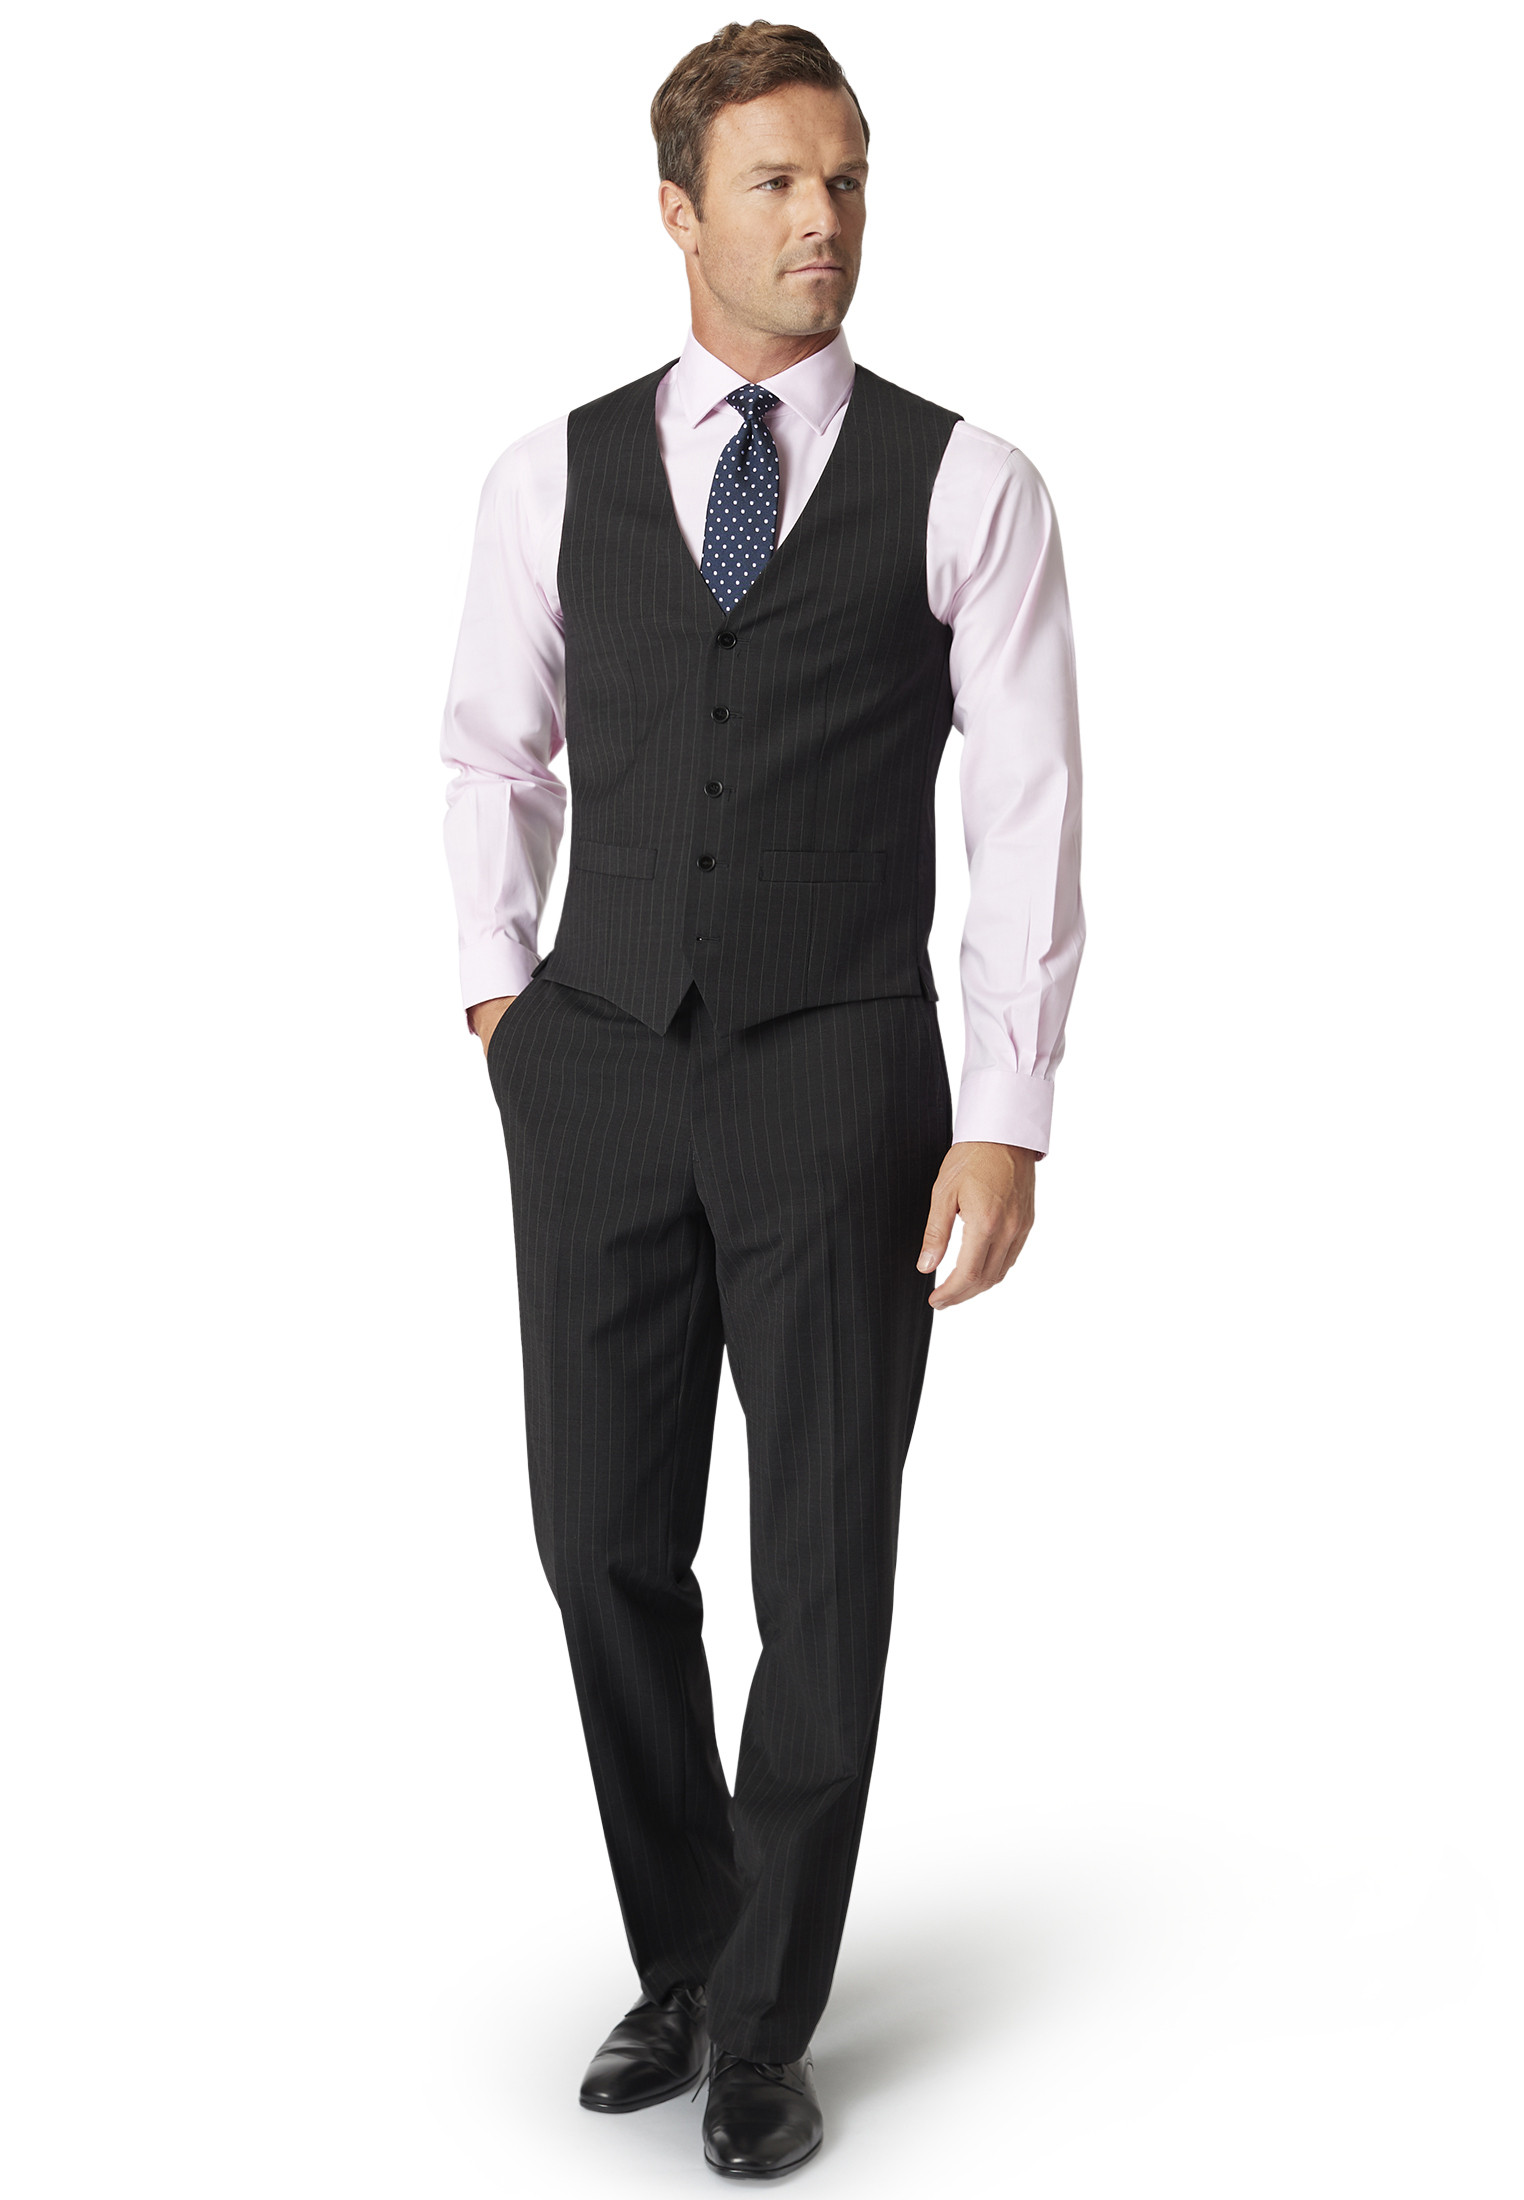 Imola Charcoal Pin Stripe Suit Trousers